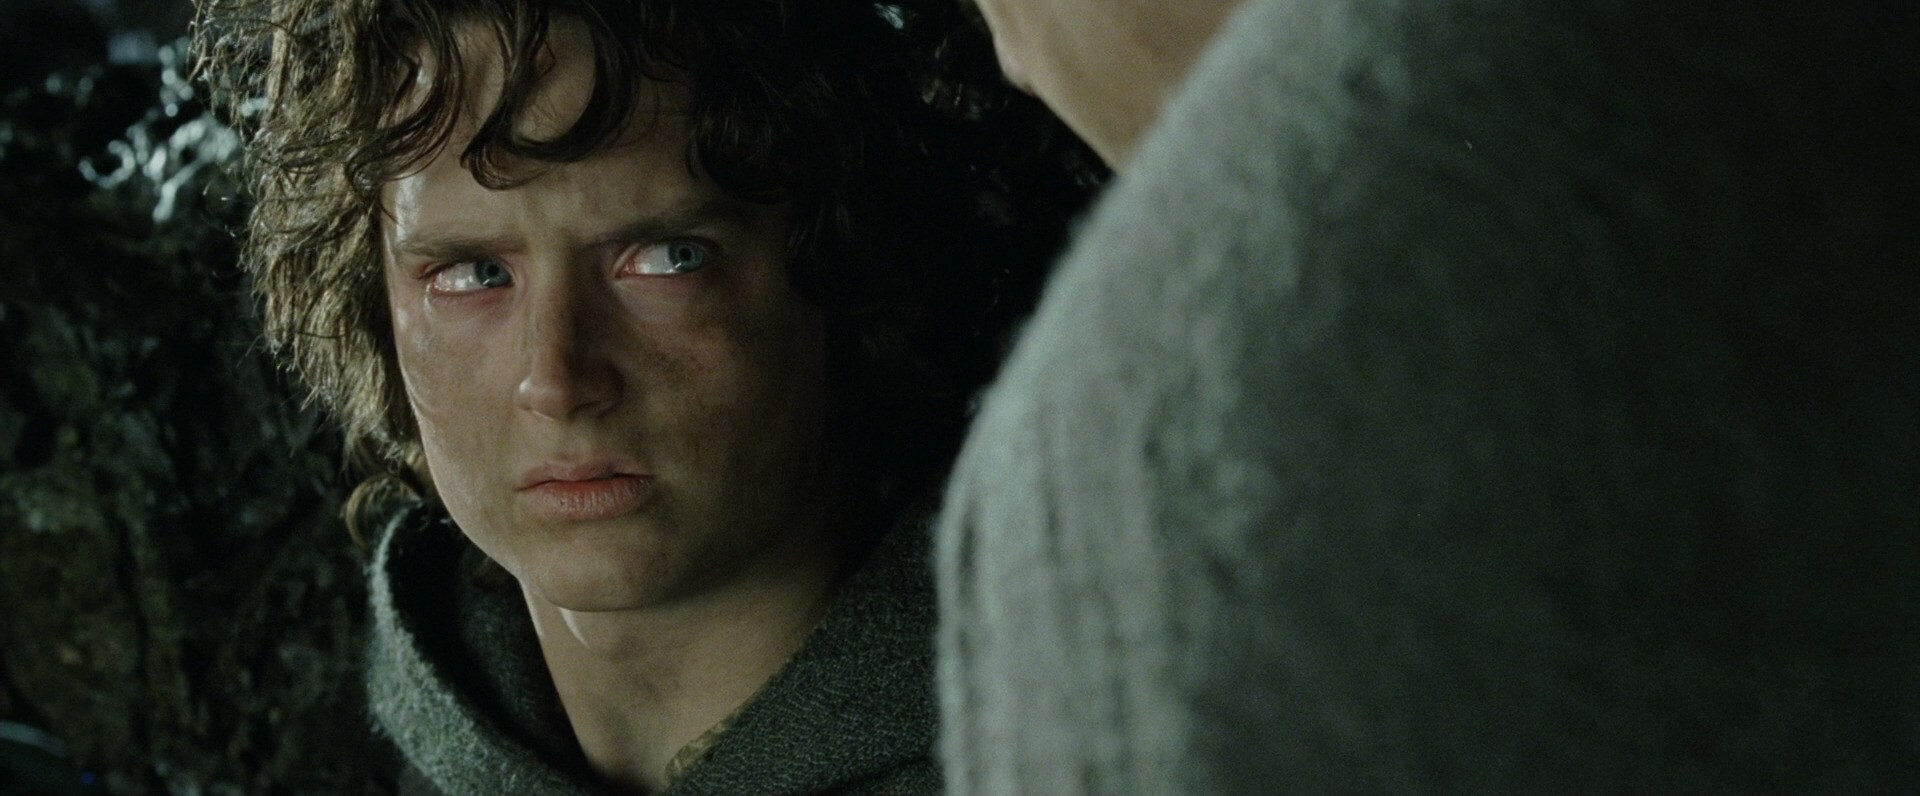 Frodo looks at Sam suspiciously in The Return of the King